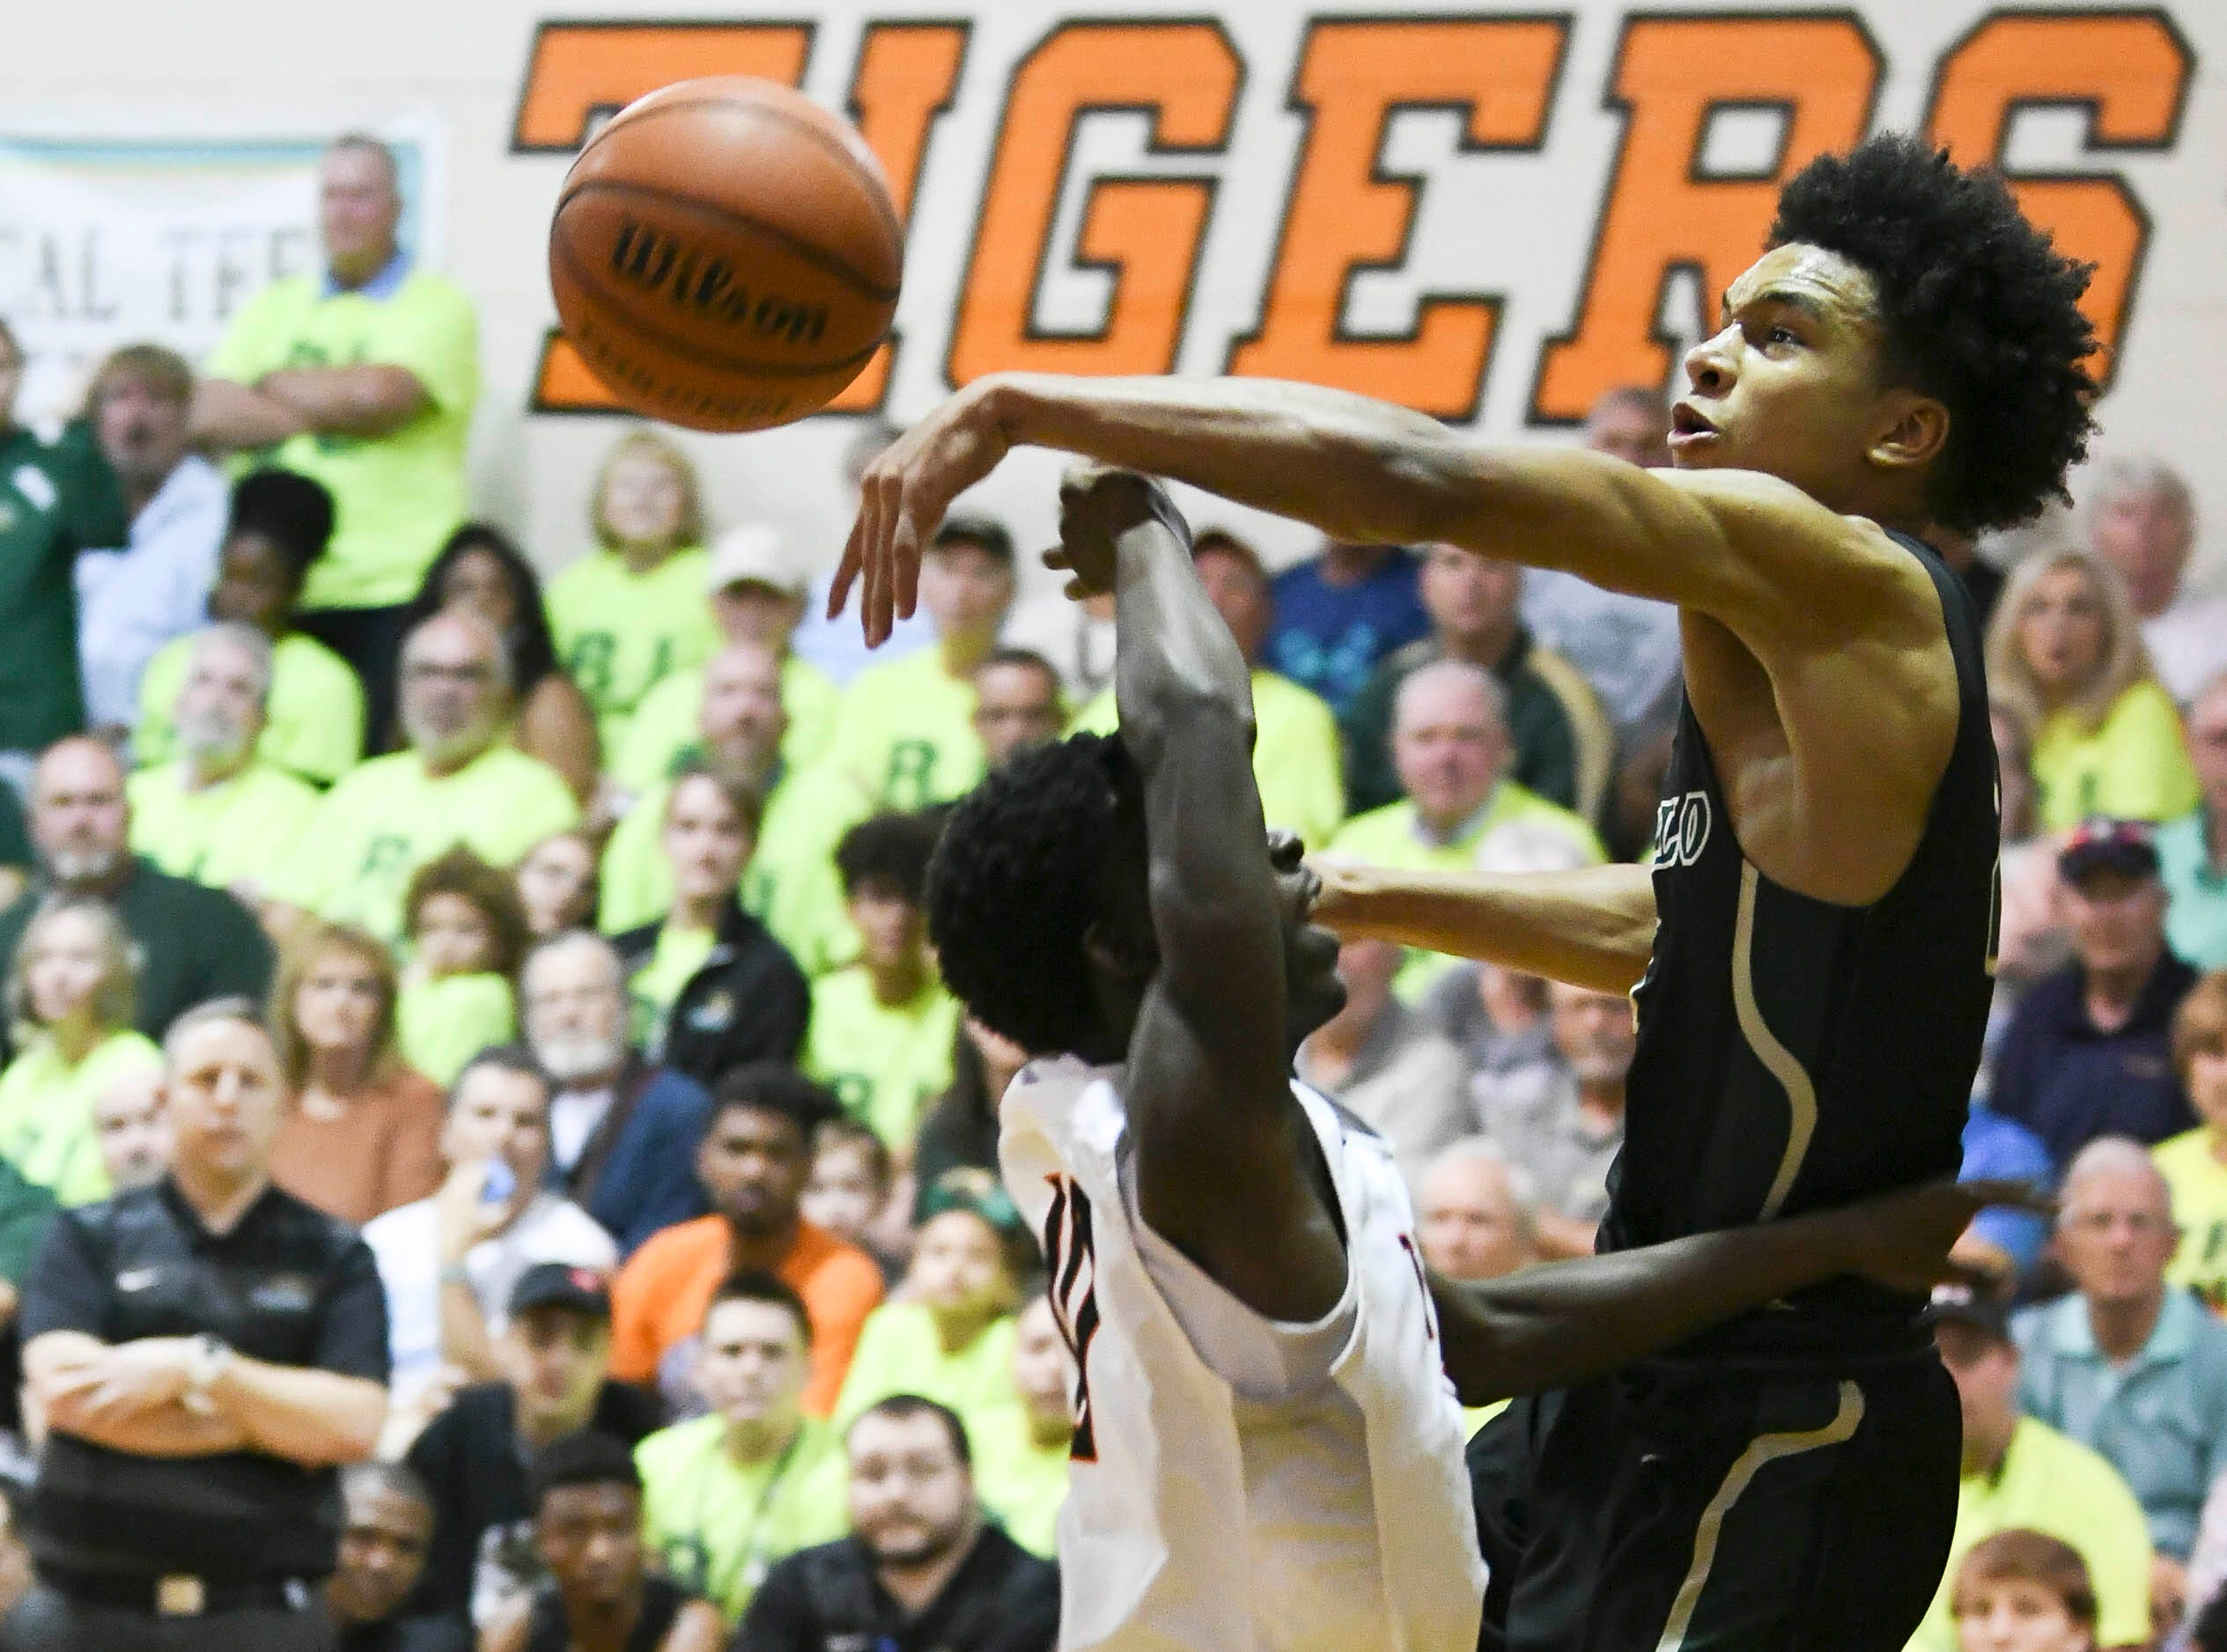 Friday's basketball Regional Final in Cocoa